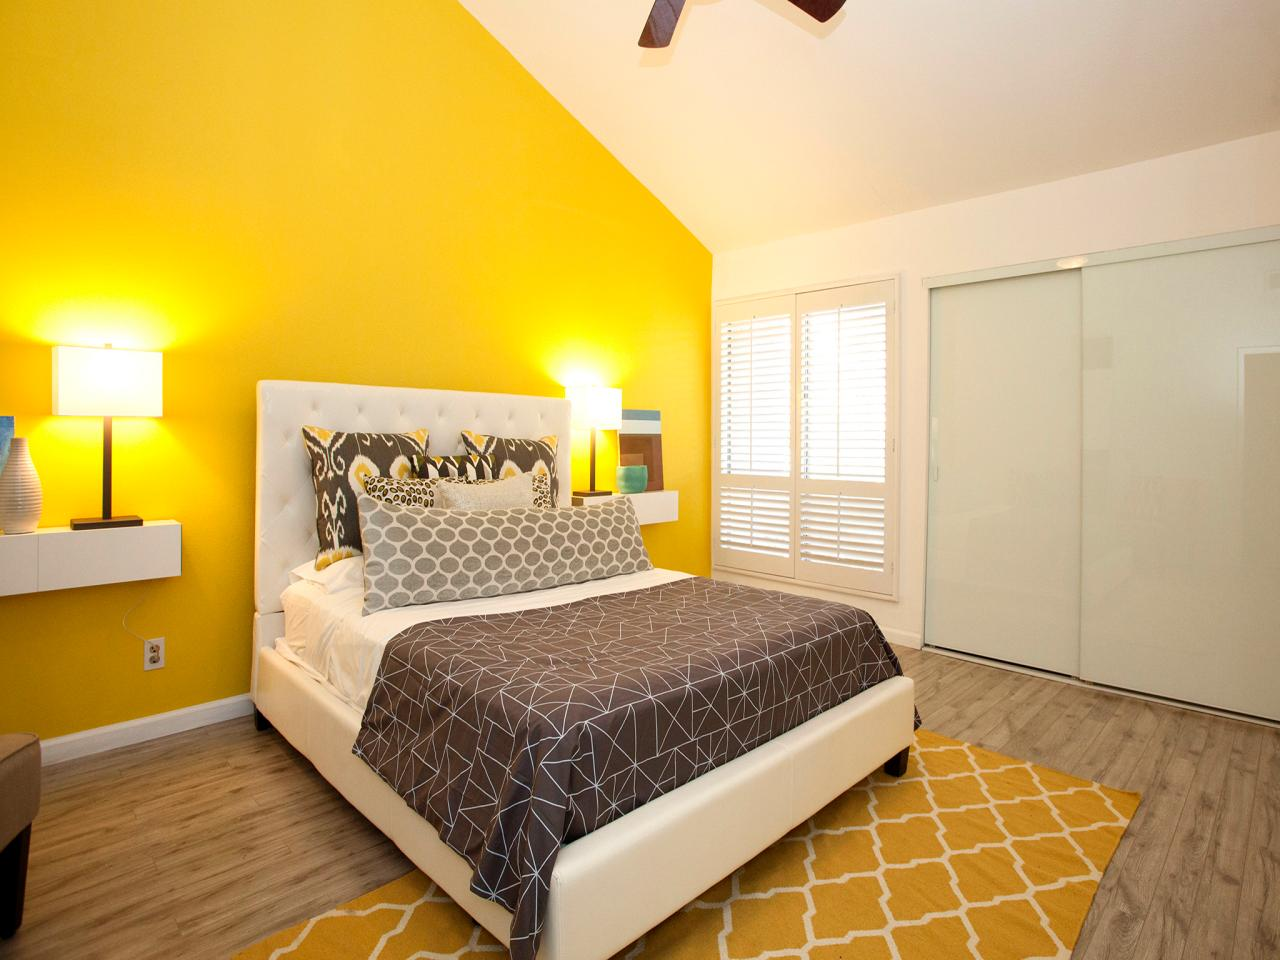 Contemporary Bedroom With Bright Yellow Accent Wall | HGTV